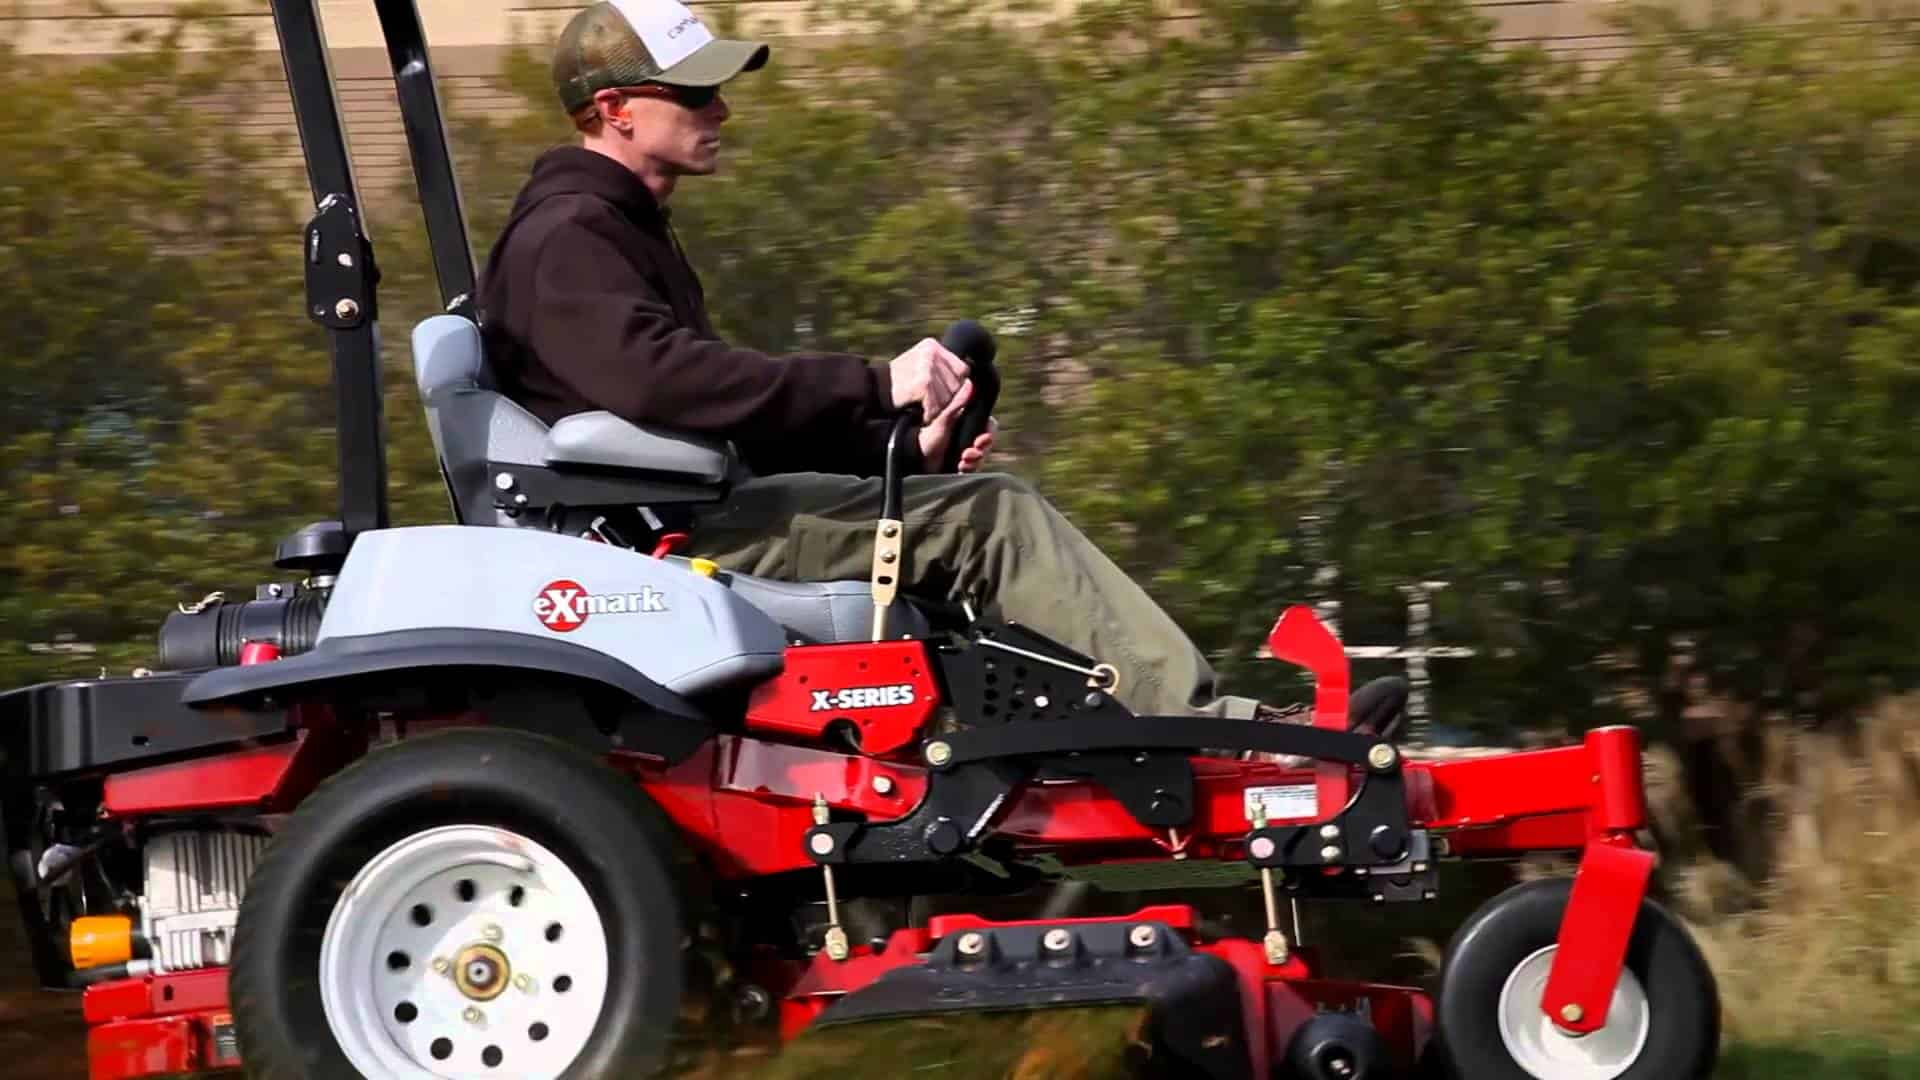 commercialmowerreviews.com - Exmark Laser Z X-Series Zero Turn Mower Review